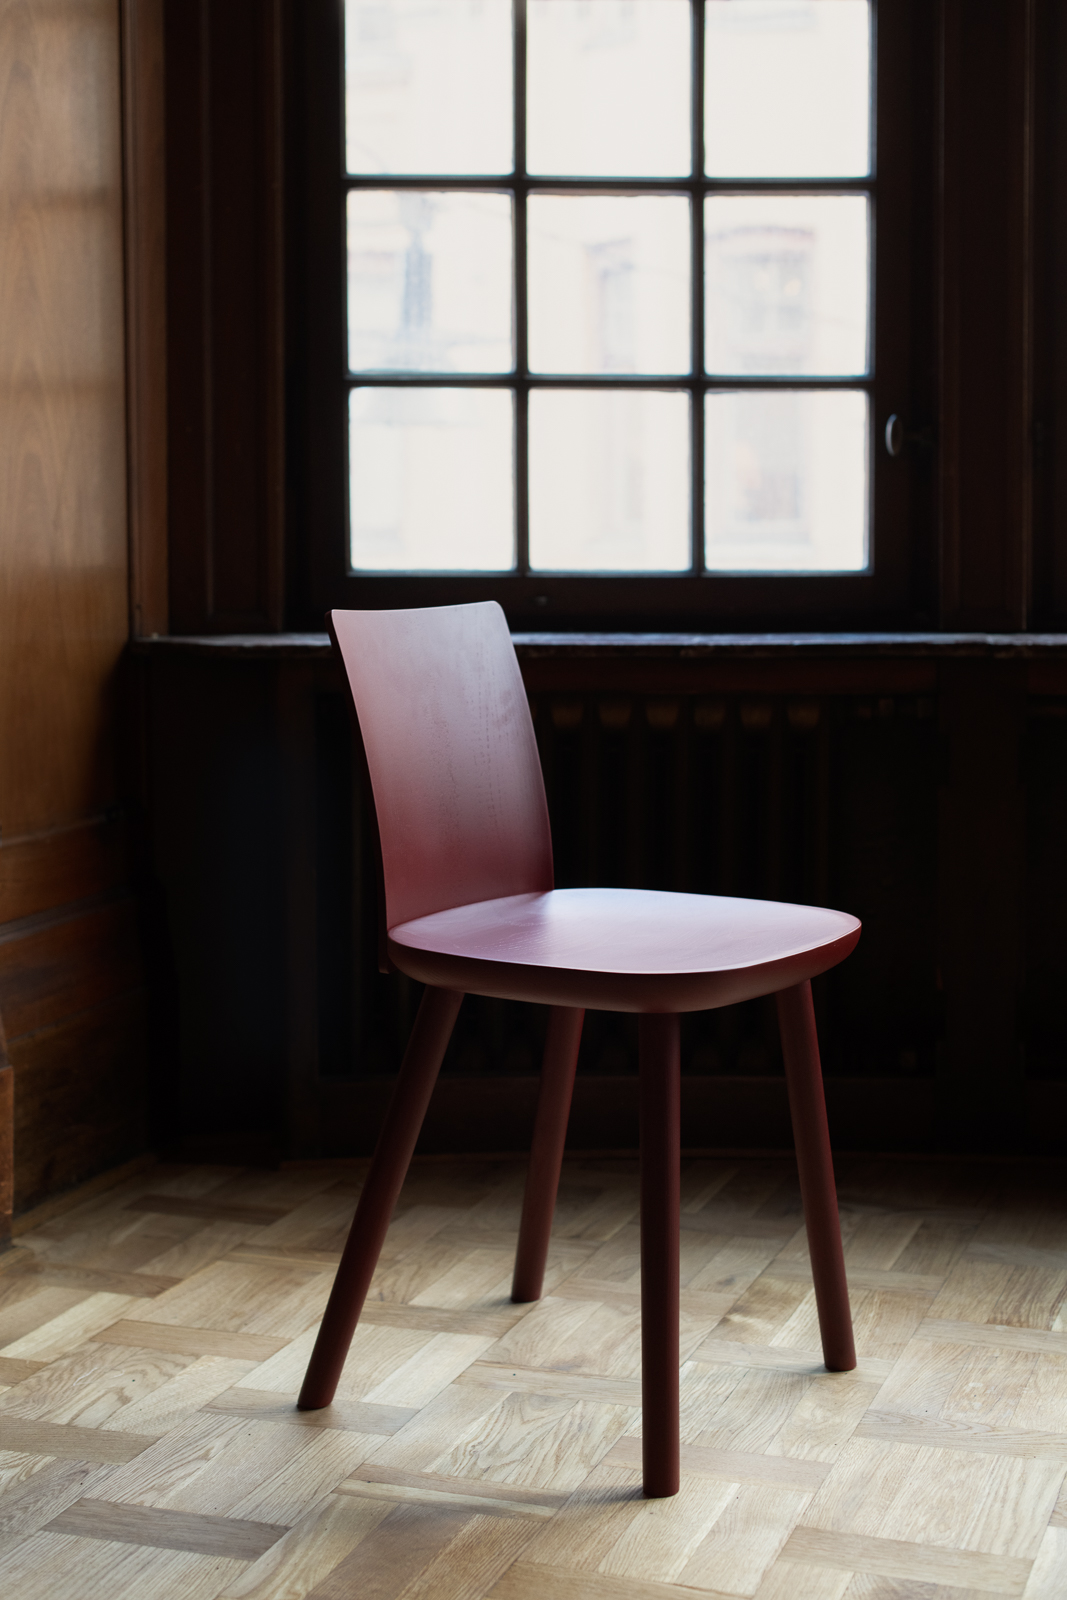 The Blest Chair by Anderssen & Voll